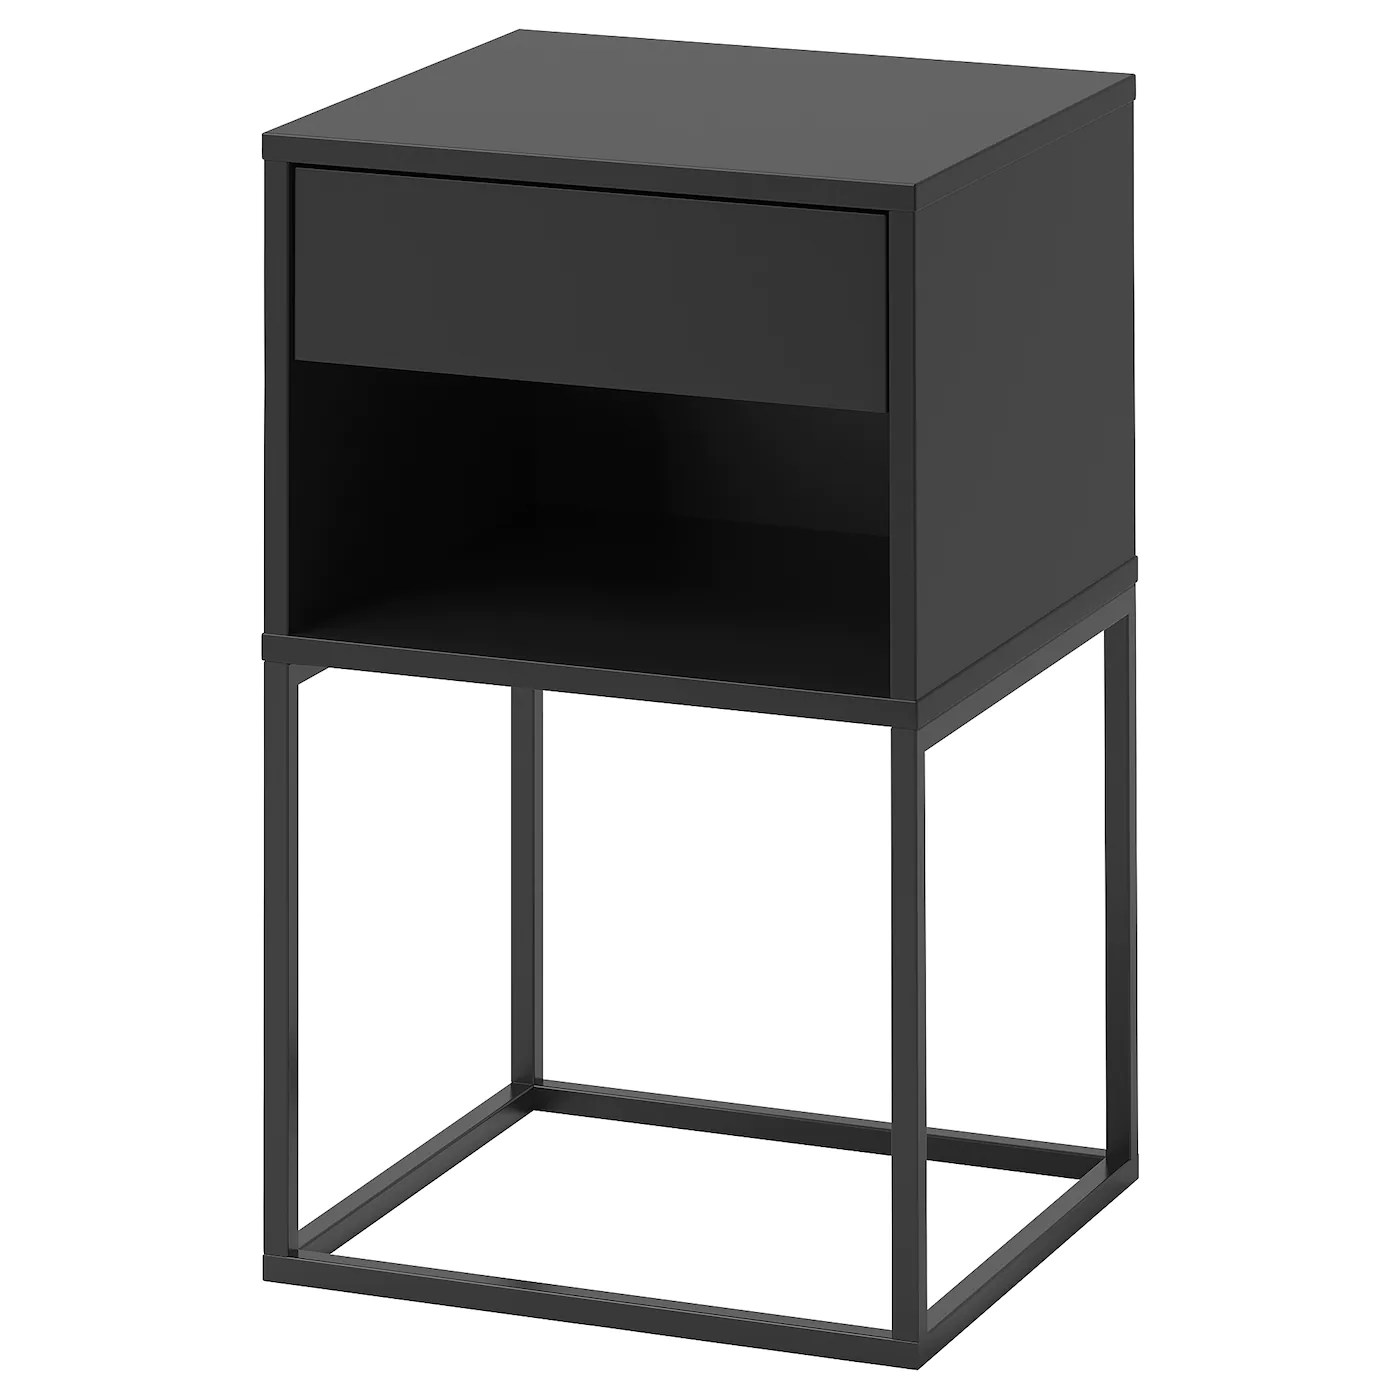 Table Chevet Murale Tables De Chevet Tables De Nuit Design Pas Cher Ikea